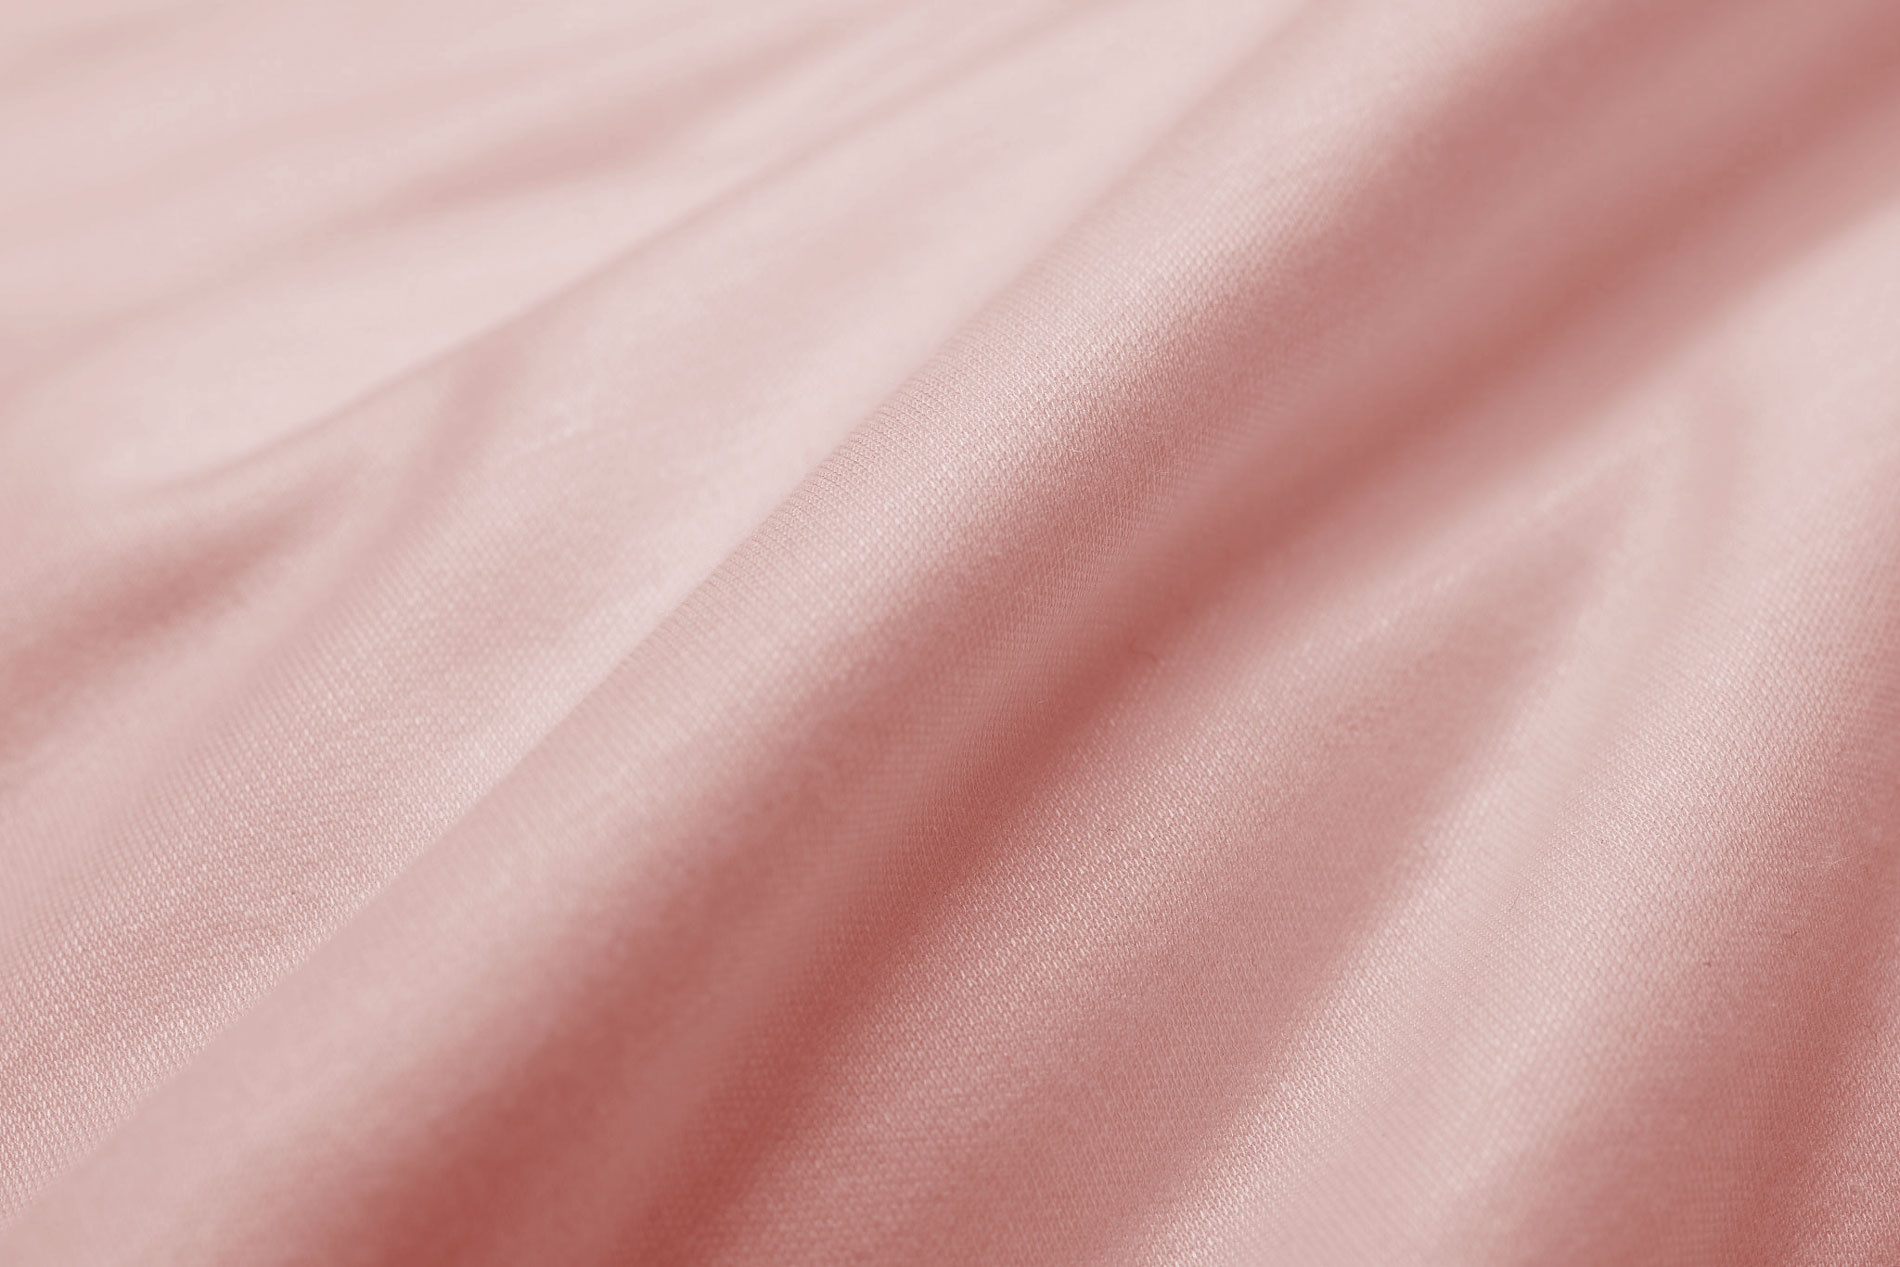 Tencel Intimate fabric, © Lenzing AG